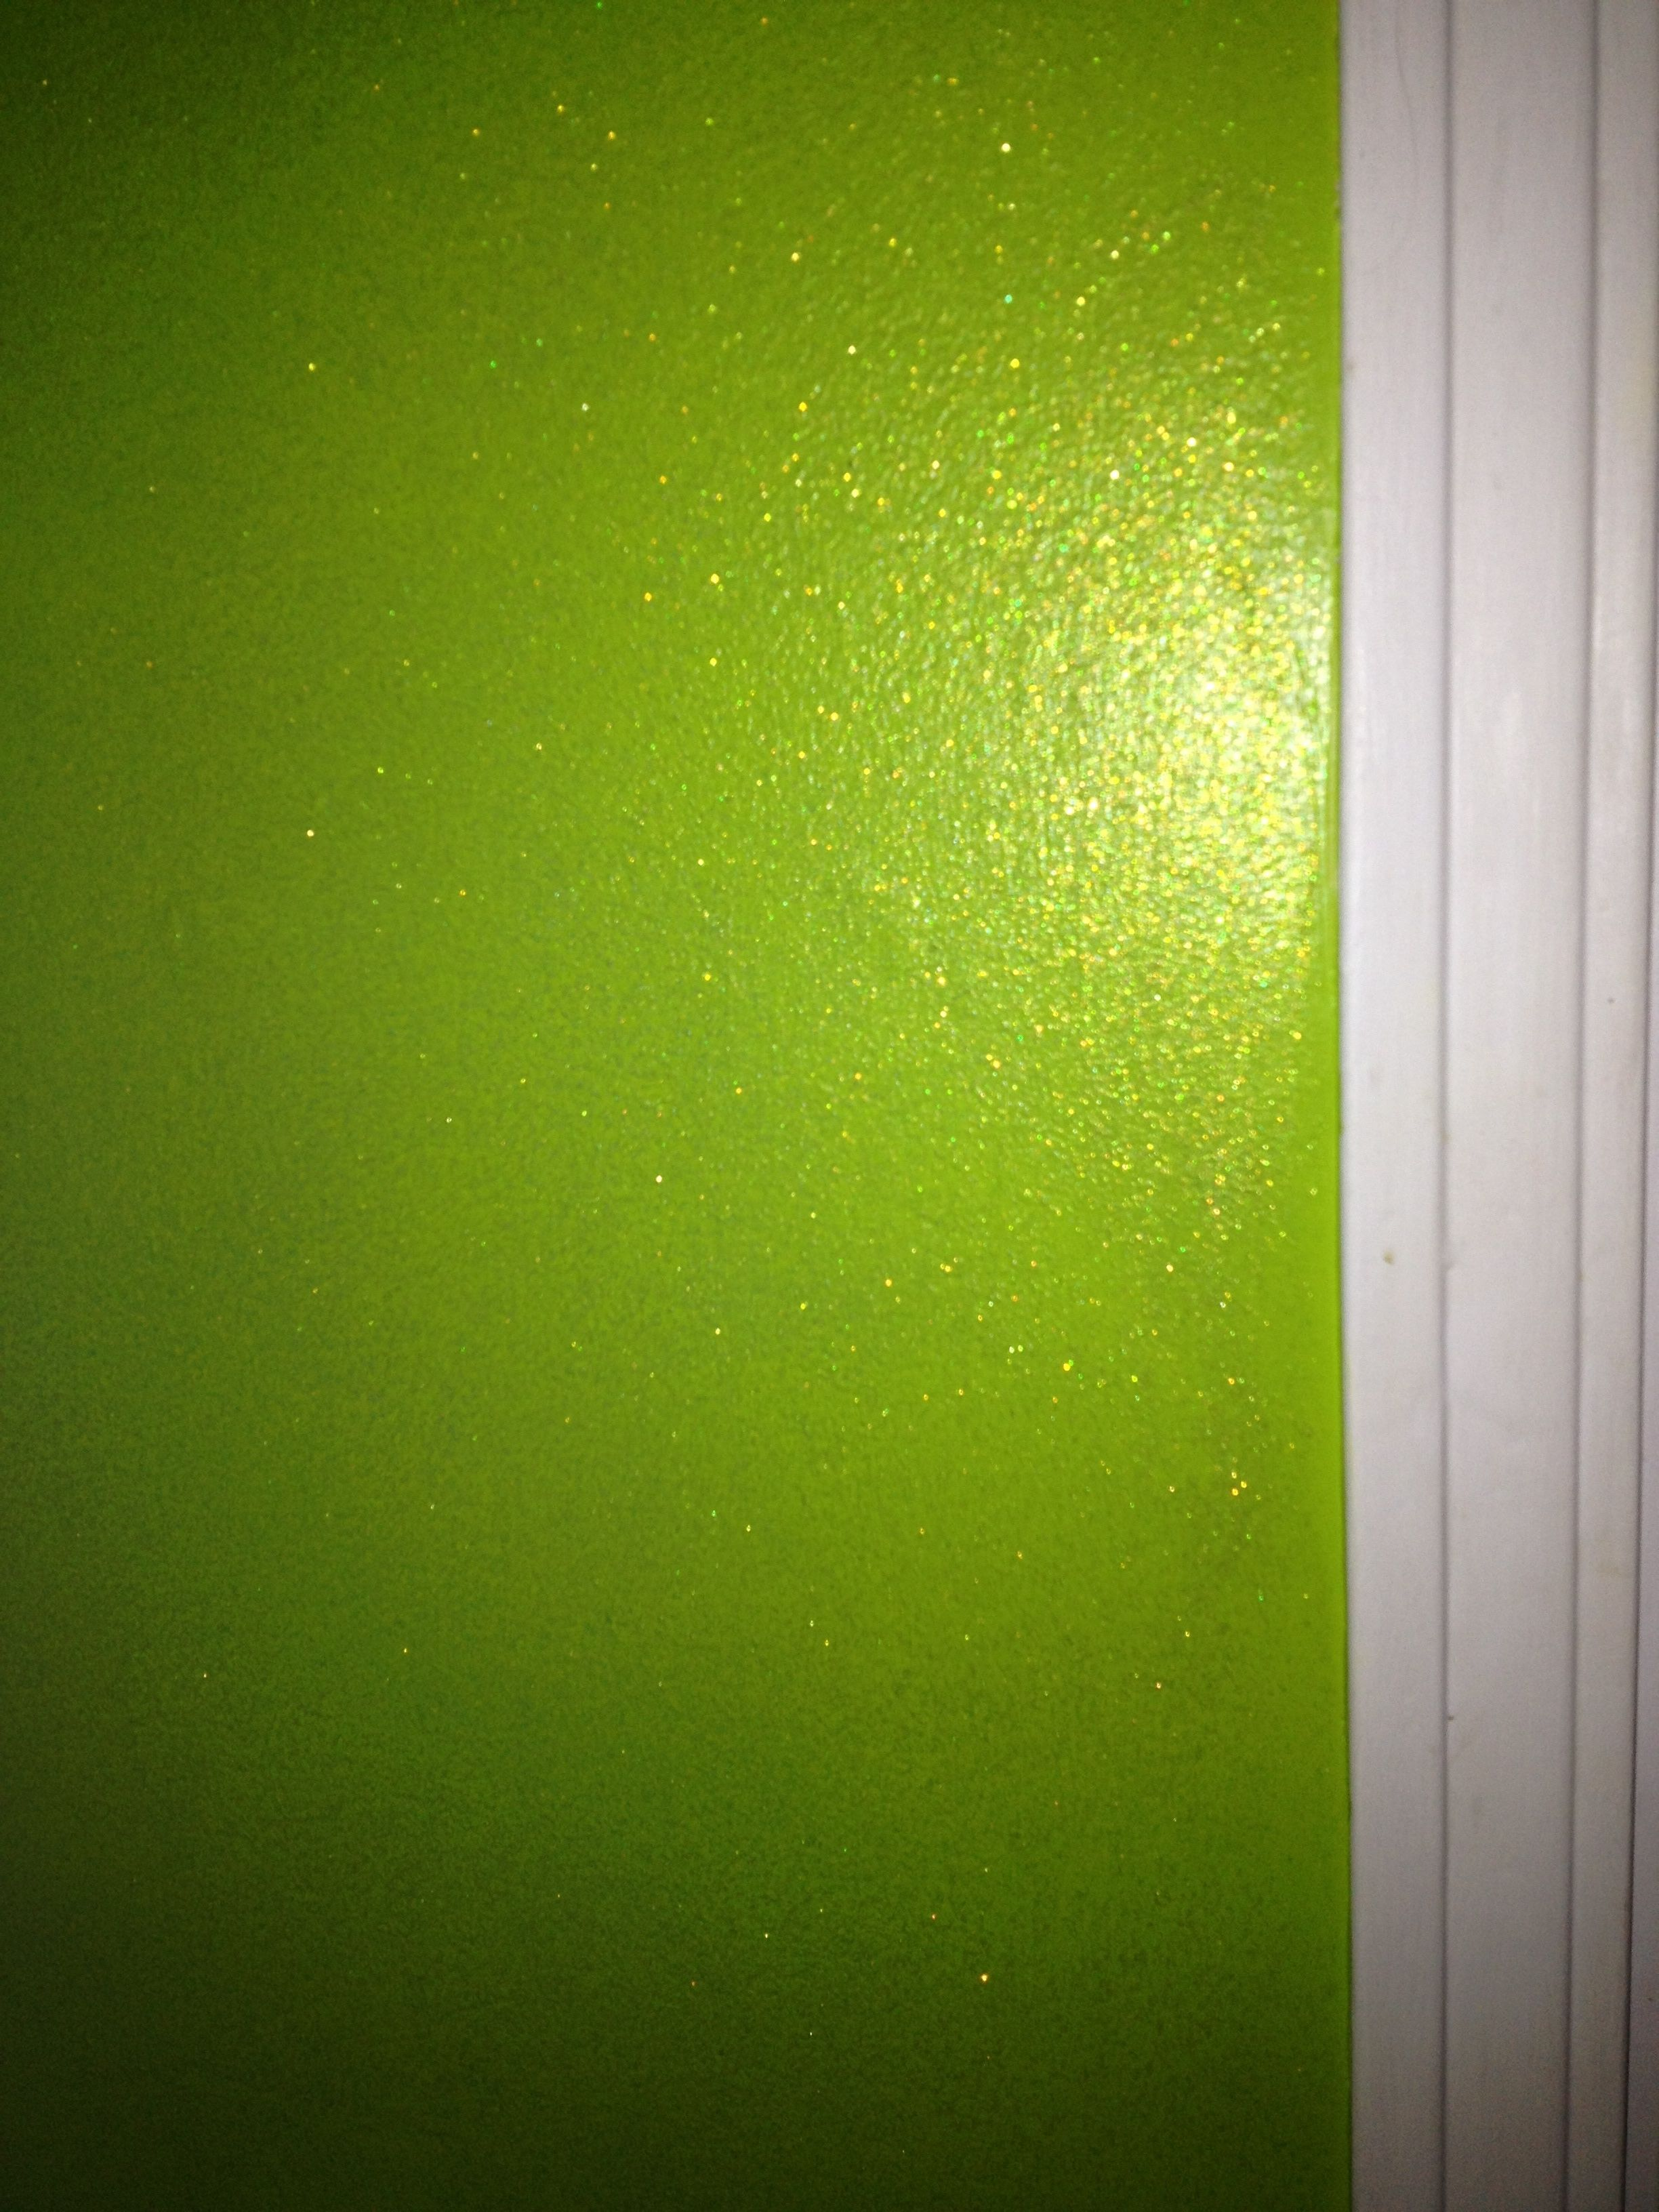 Behr Ultra Premium Paint In Neon Green Plus 2 Bottles Of Martha Limeade Glitter Mixed With A Quart Specialty Glaze Voila